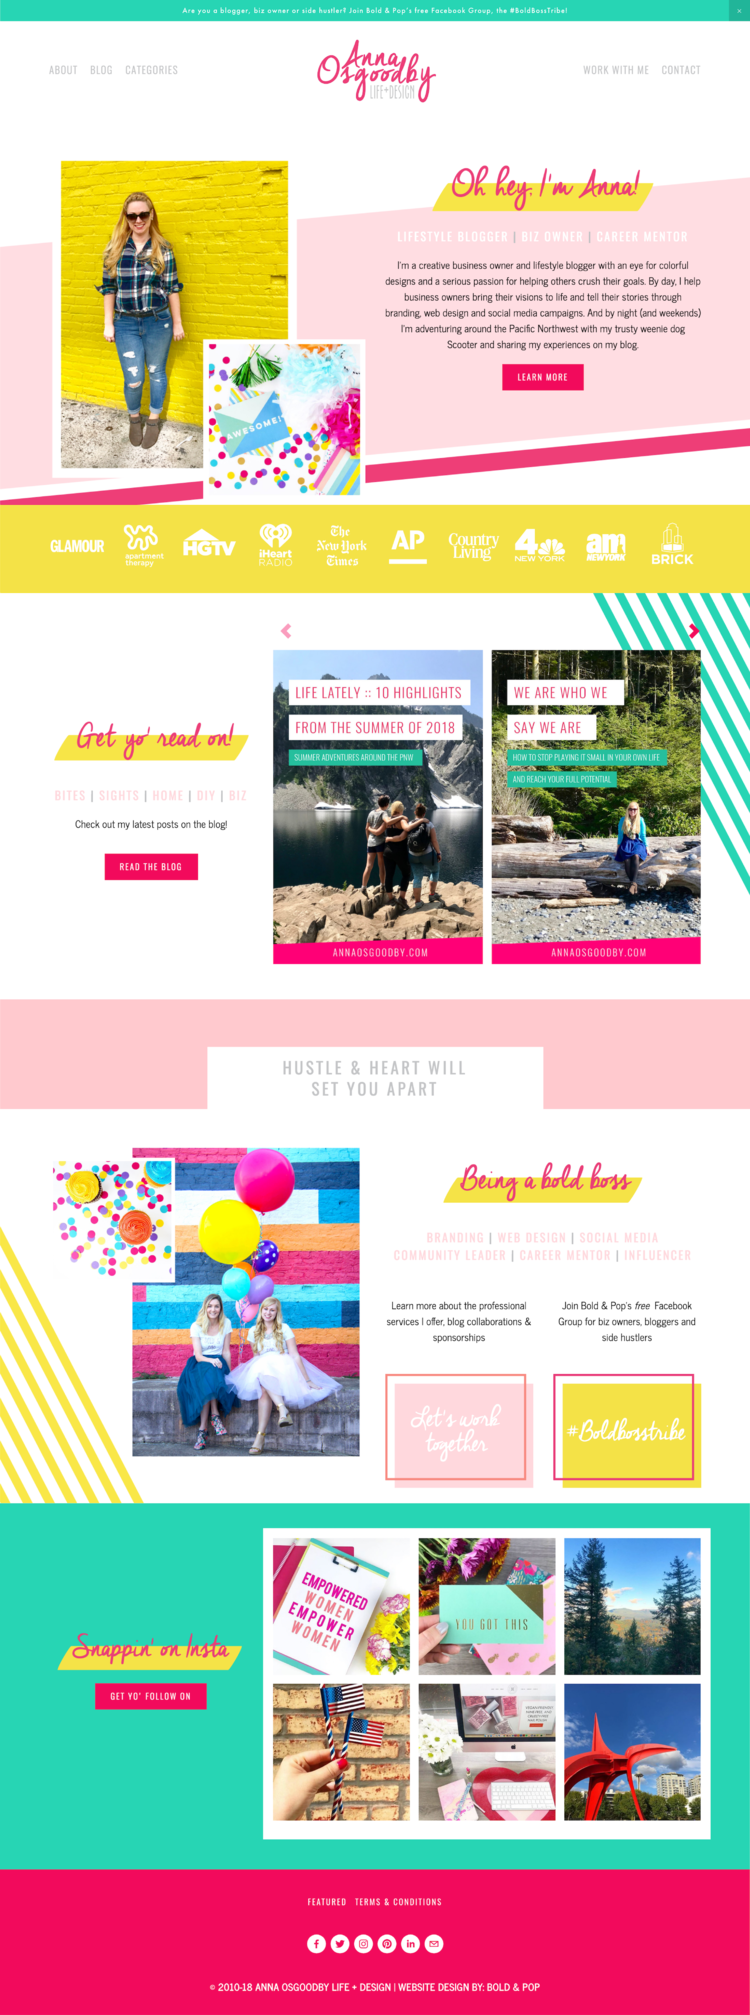 Anna Osgoodby - LifestyleBlog_WebsiteDesign.png